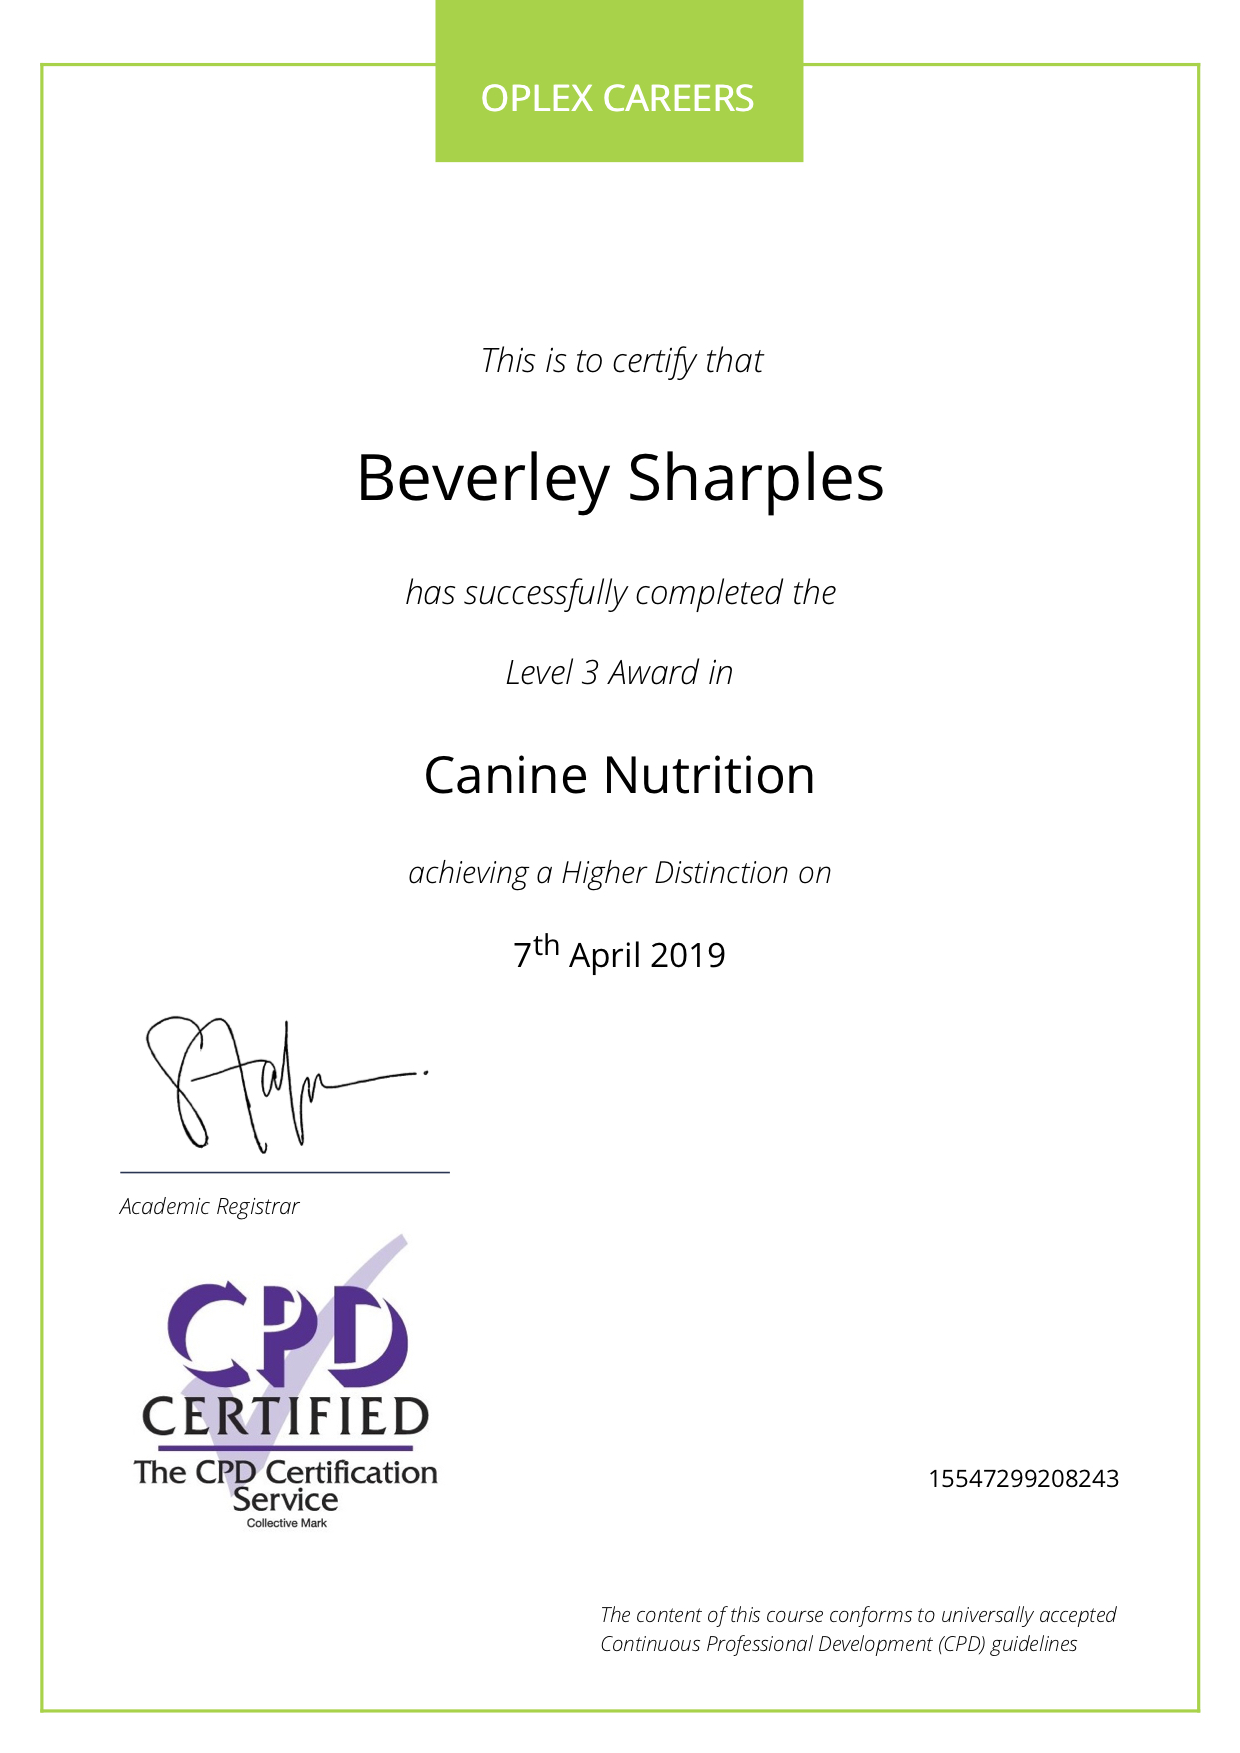 Canine Nutrition Level 3